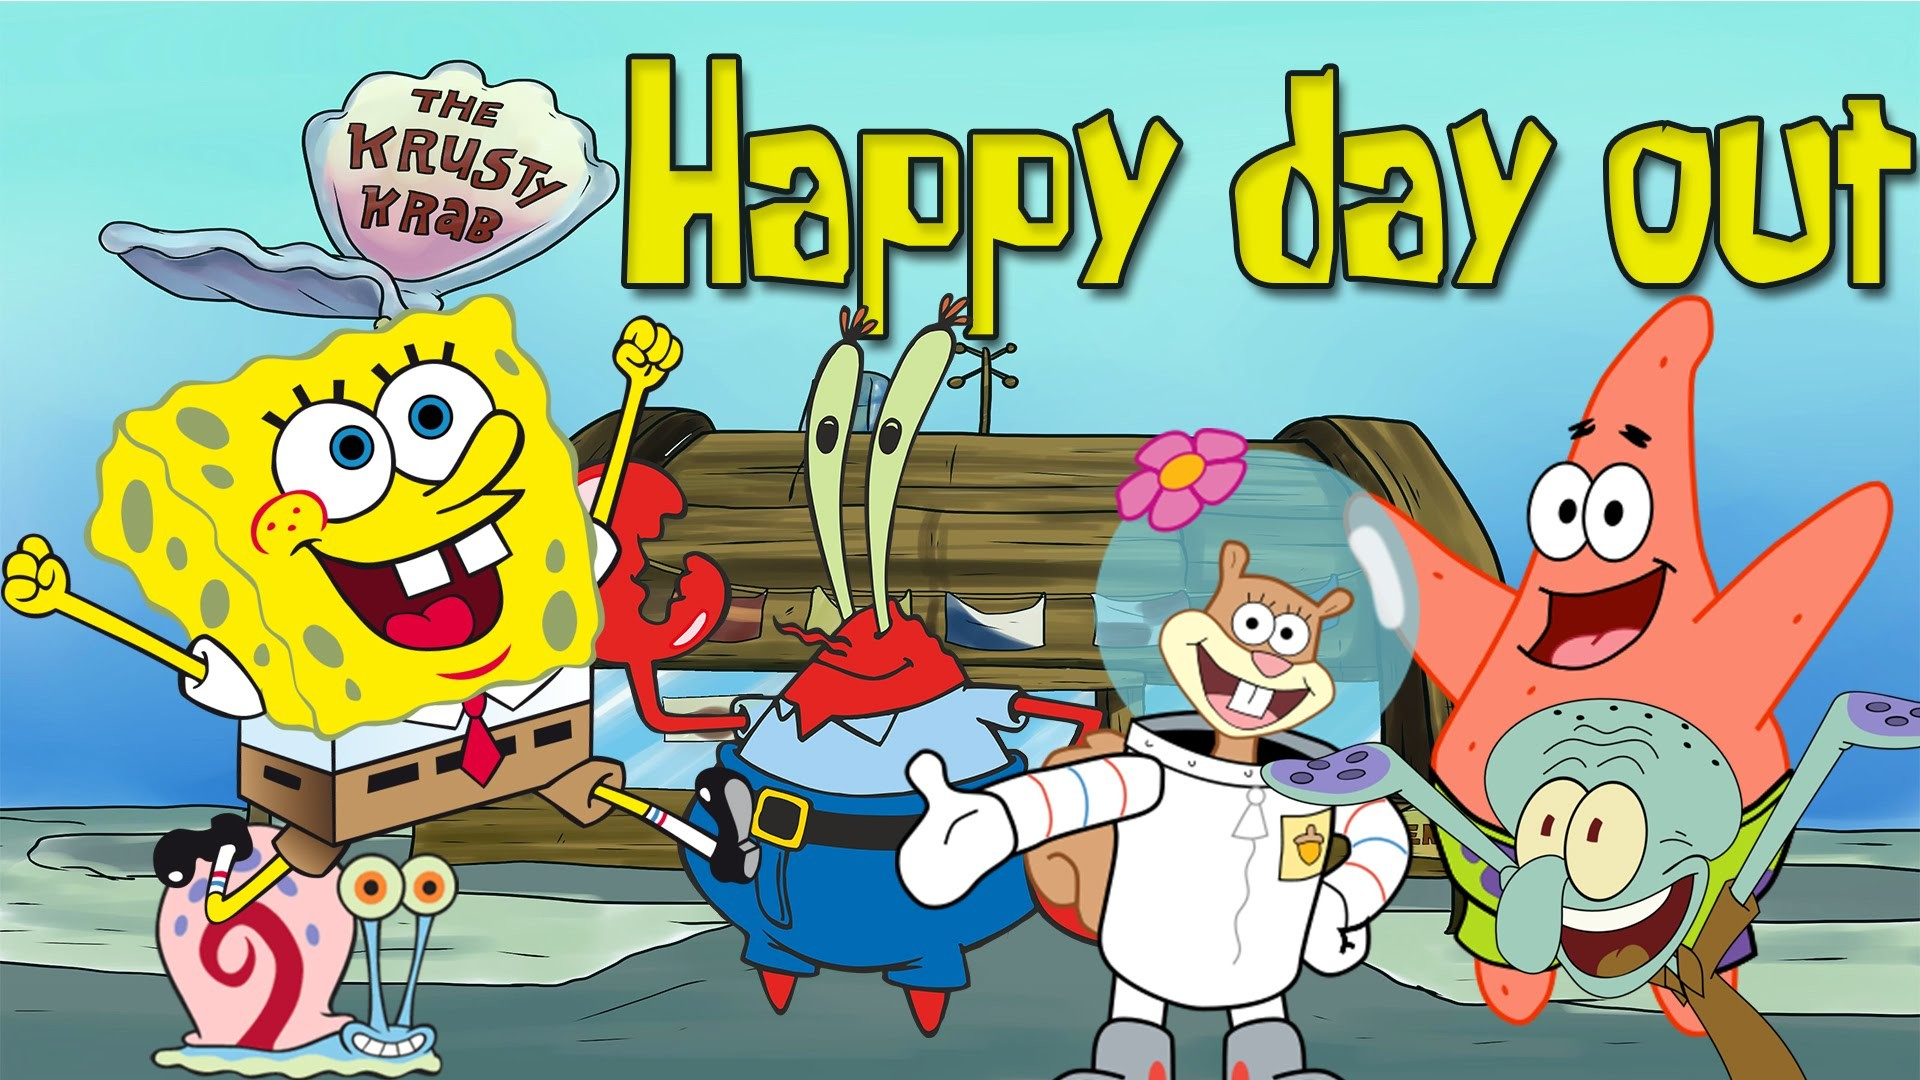 Res: 1920x1080,  Happy Day Out With Spongebob And Friends Desktop Wide Wallpapers,  #39 of 62